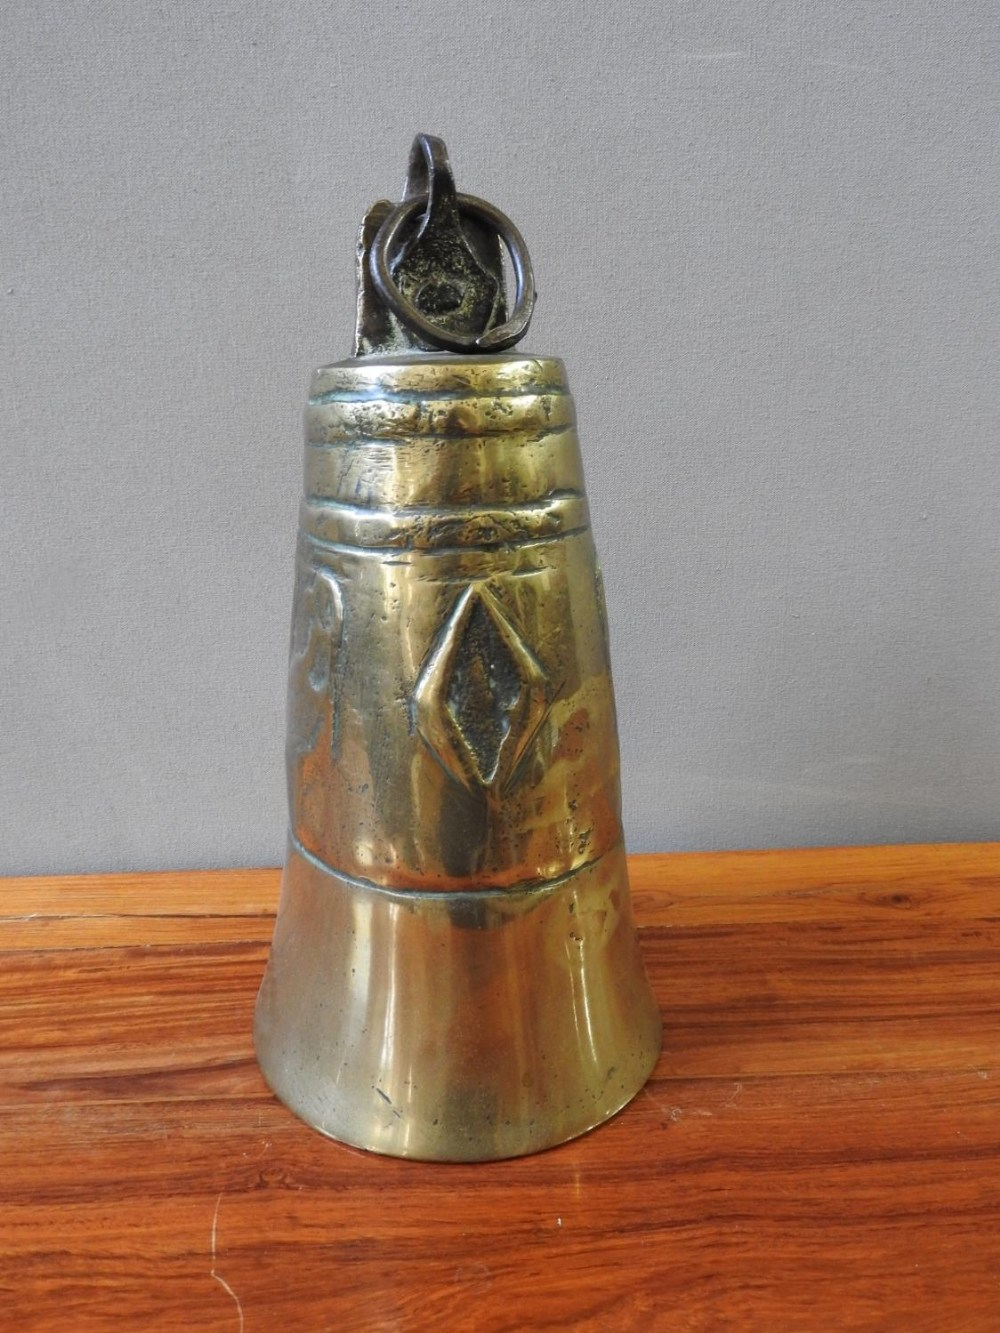 LARGE BRASS BELL 19TH CENTURY 27cm high; together with a SMALL INDIAN BRASS STAMP, 19TH CENTUR